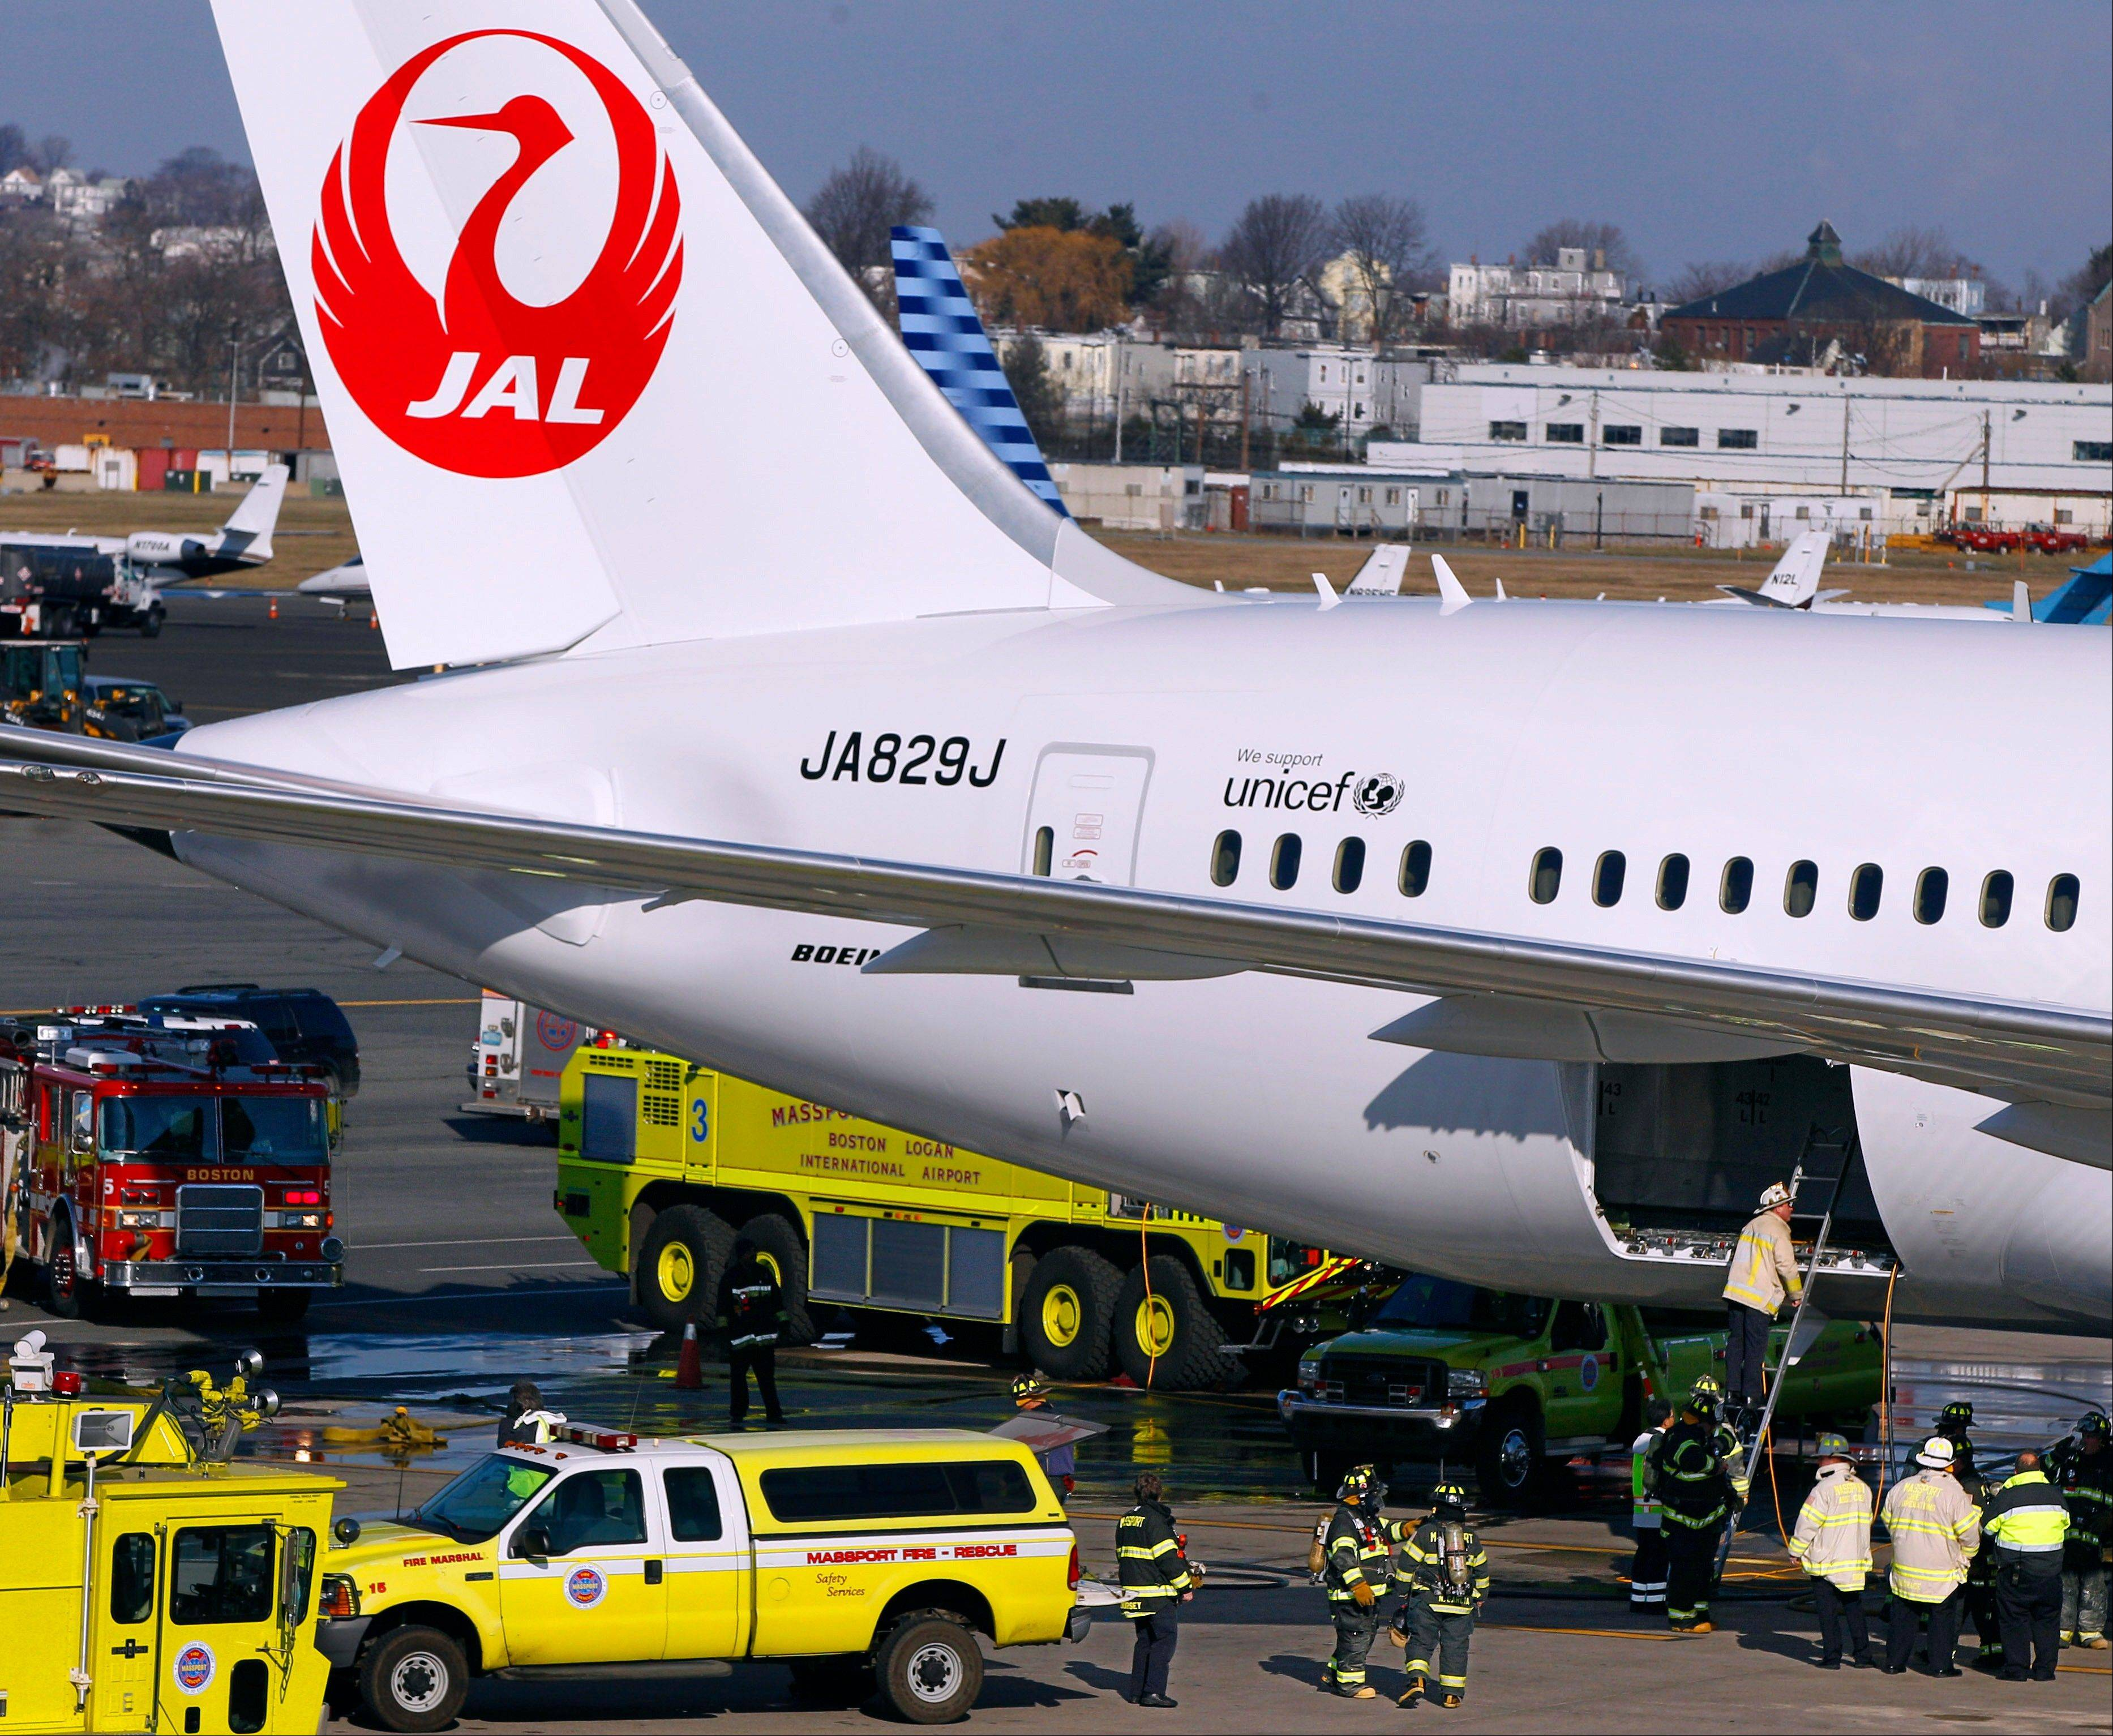 A Japan Airlines Boeing 787 jet aircraft is surrounded in early January by emergency vehicles while parked at a terminal E gate at Logan International Airport in Boston as a fire chief looks into the cargo hold.